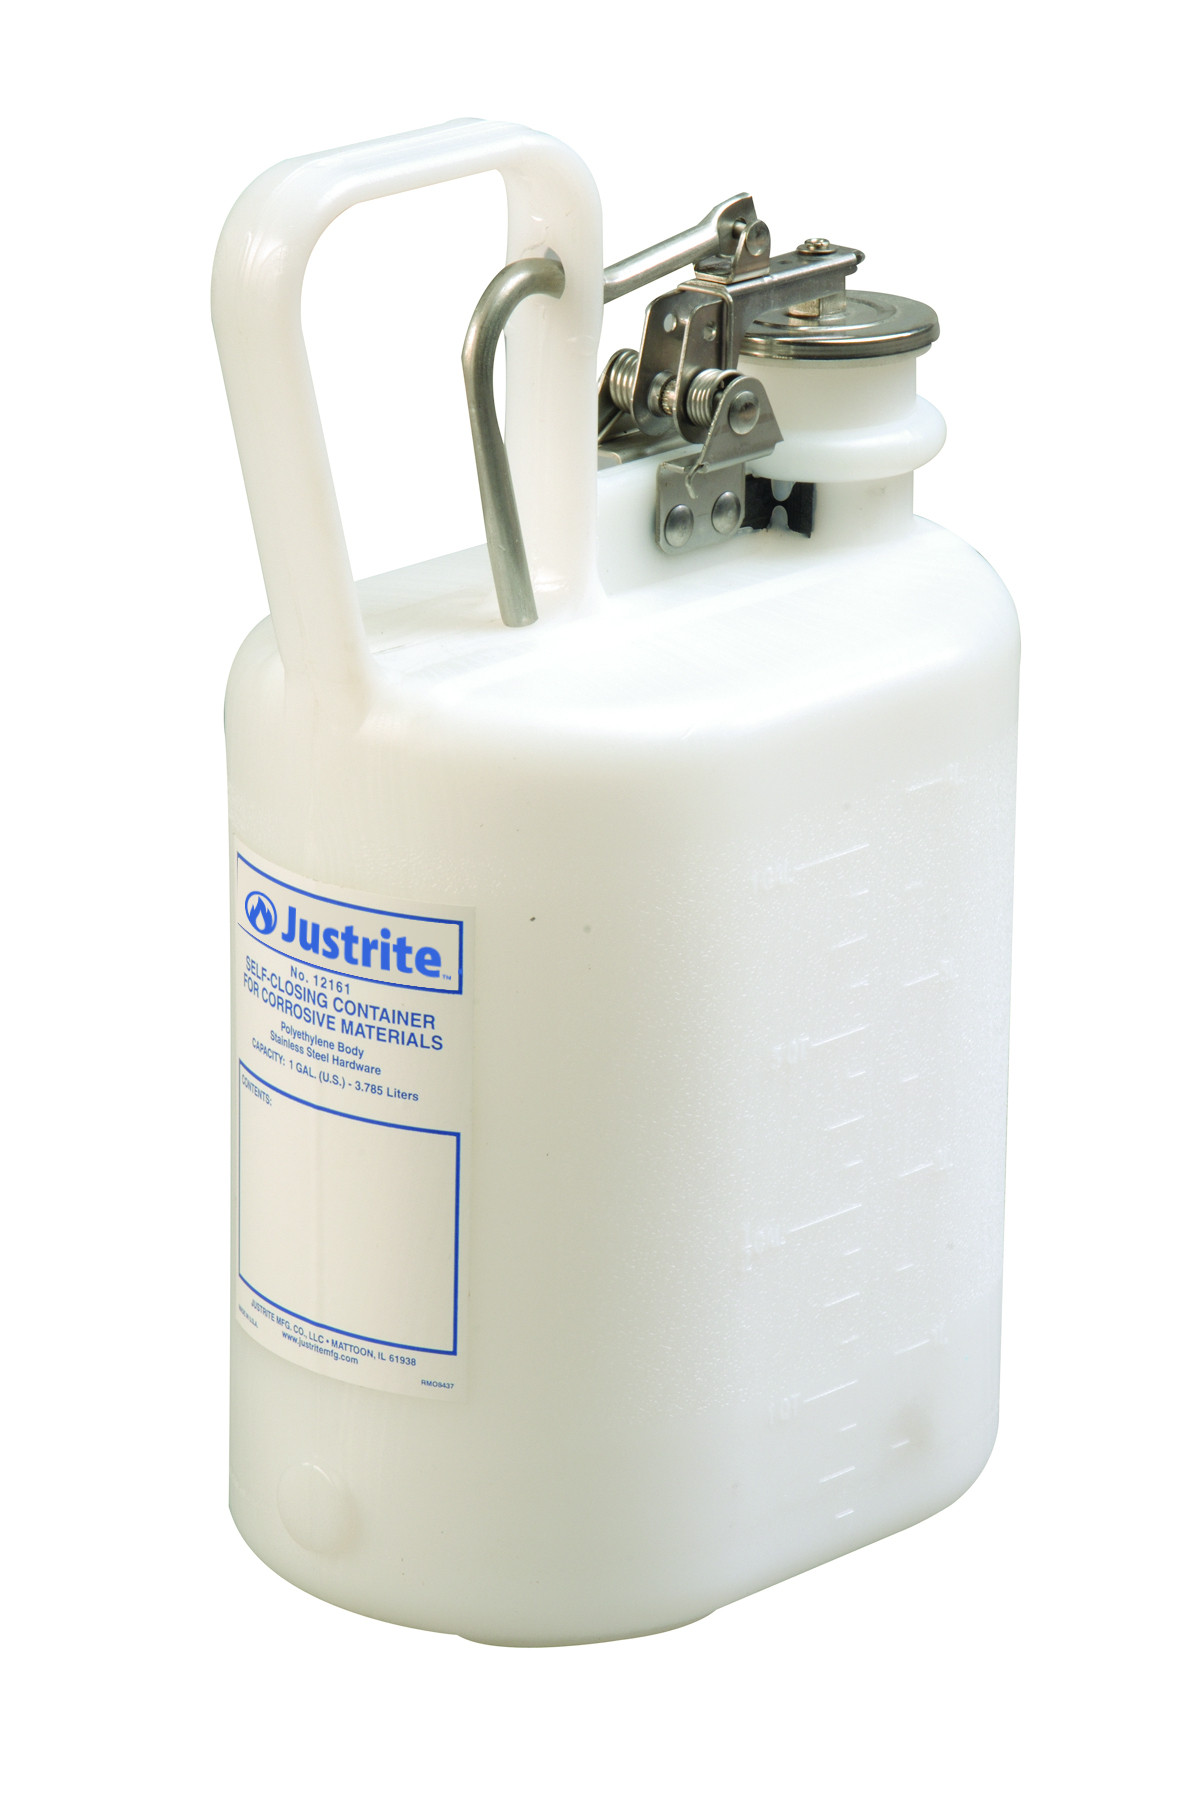 12161_safety-container-1-gallon-white_justrite